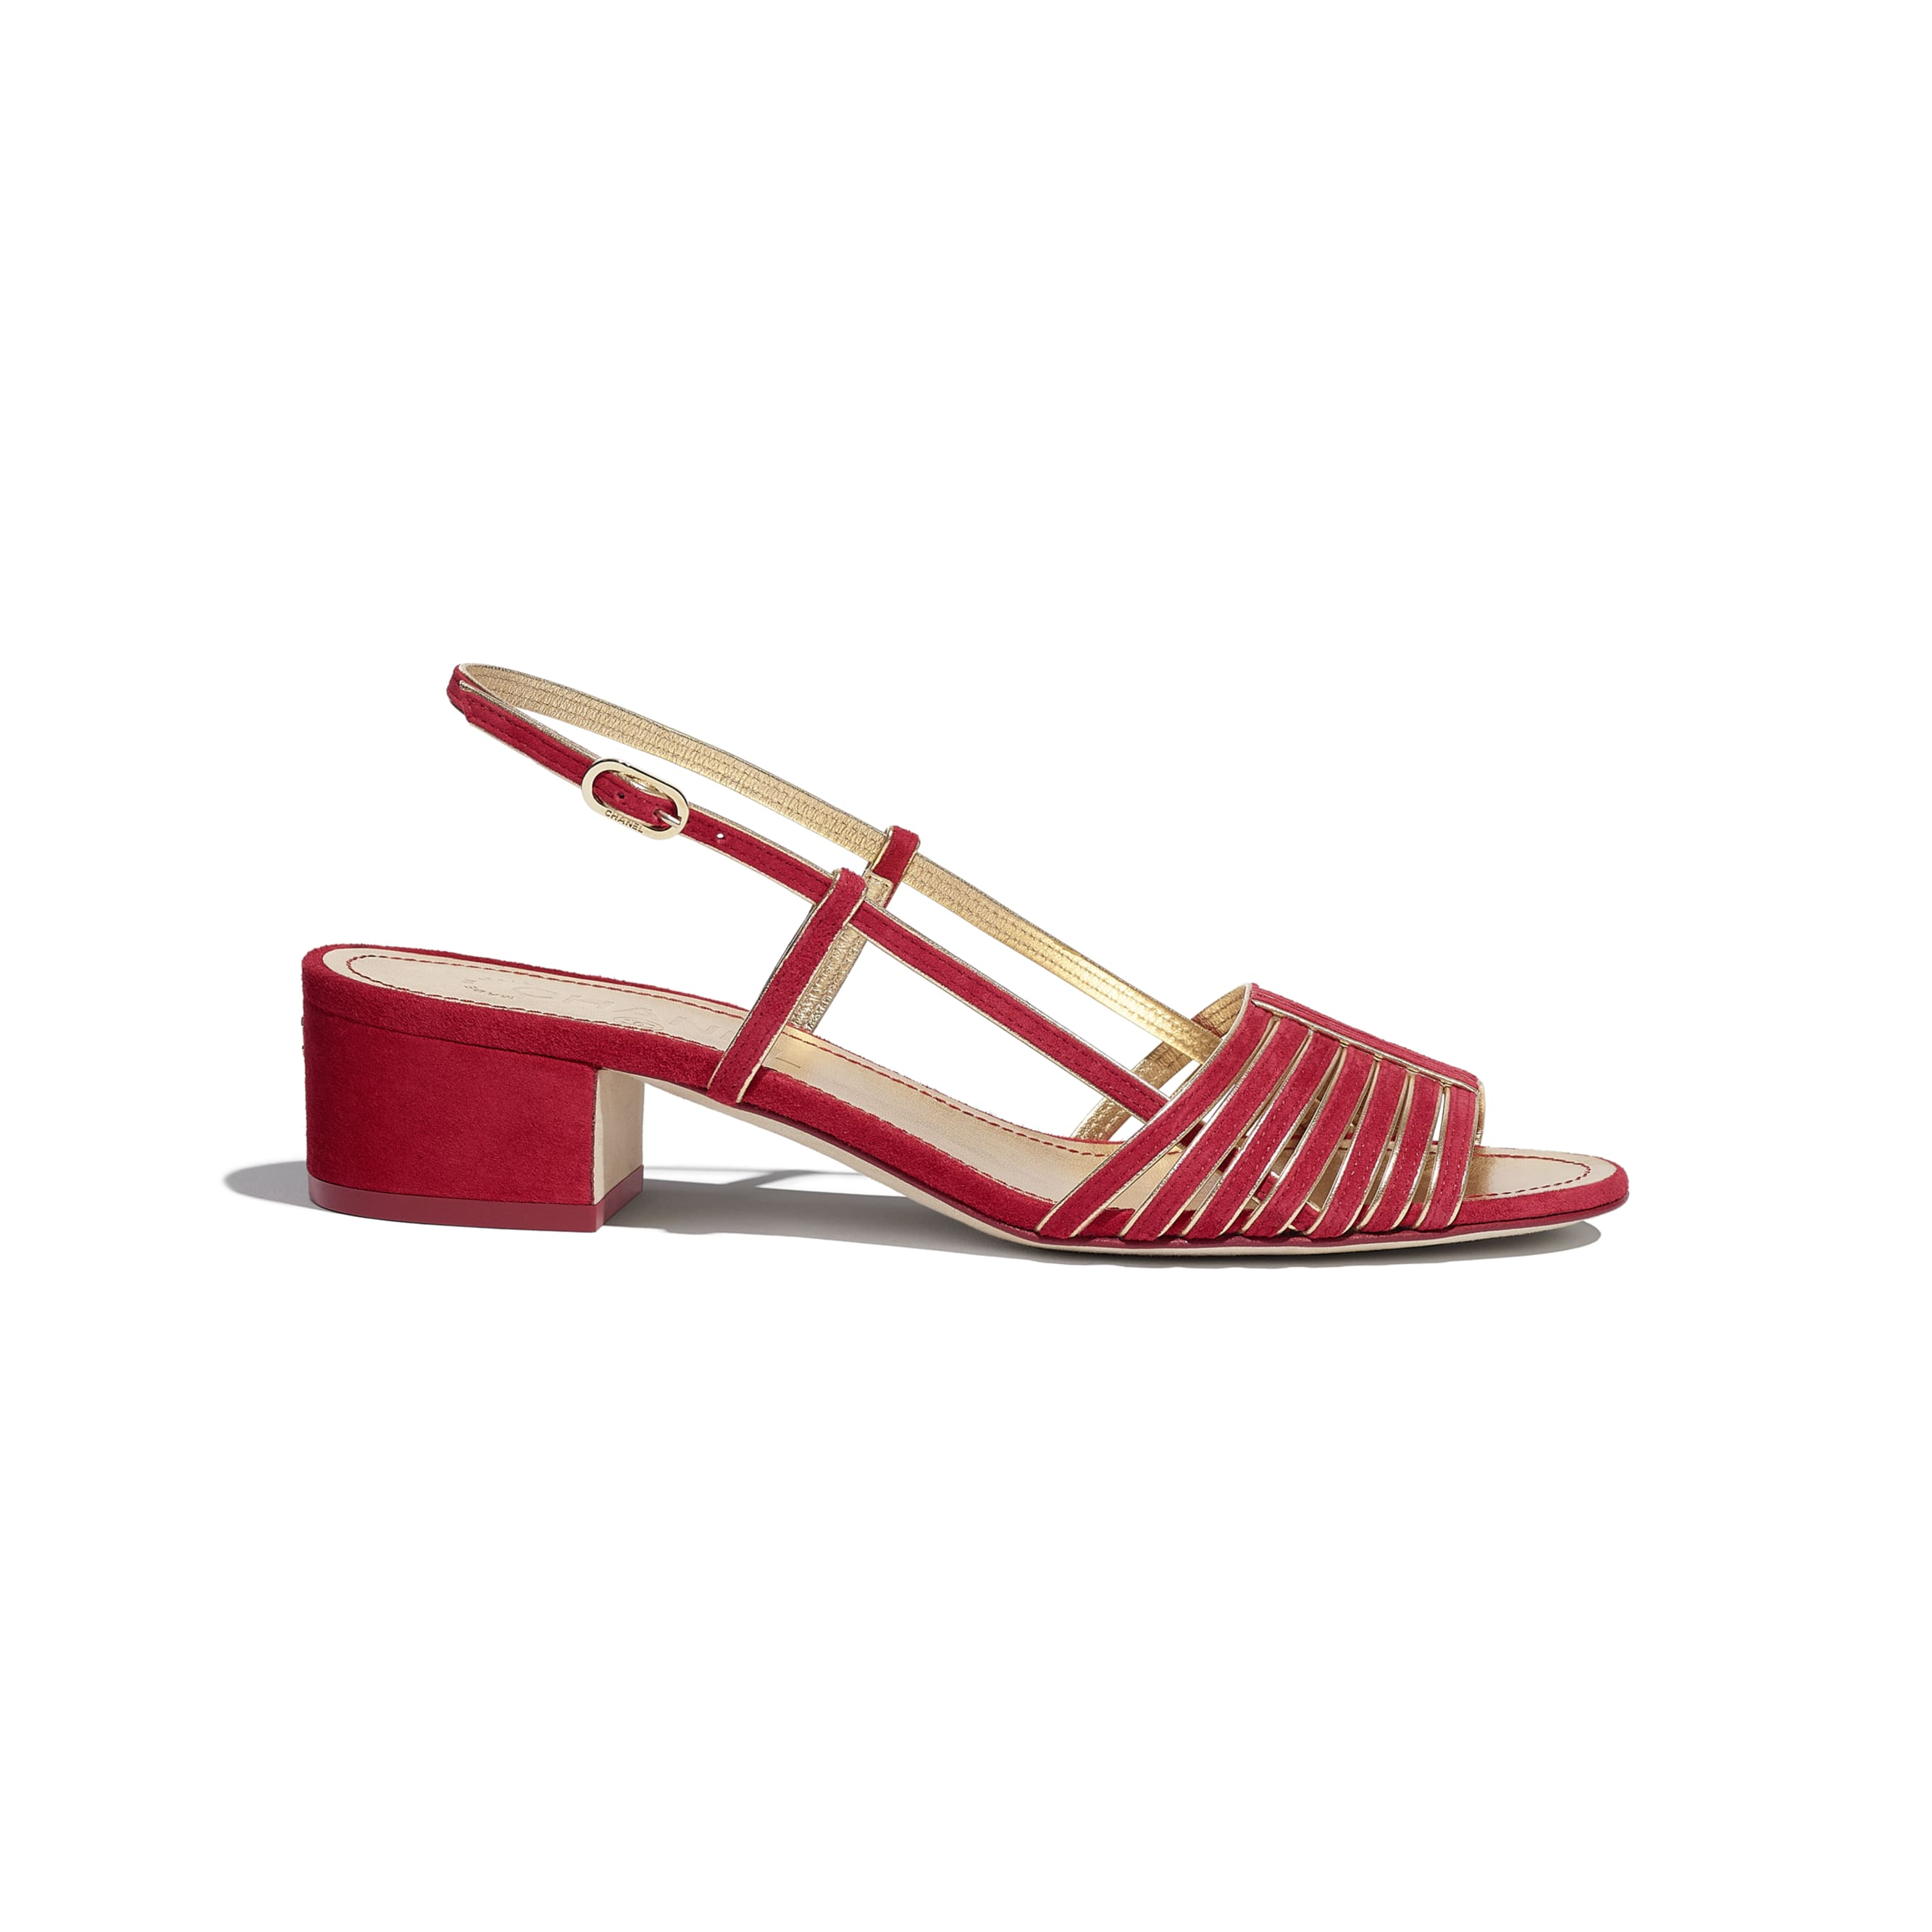 Sandals - Red & Gold - Suede Kidskin - CHANEL - Default view - see standard sized version